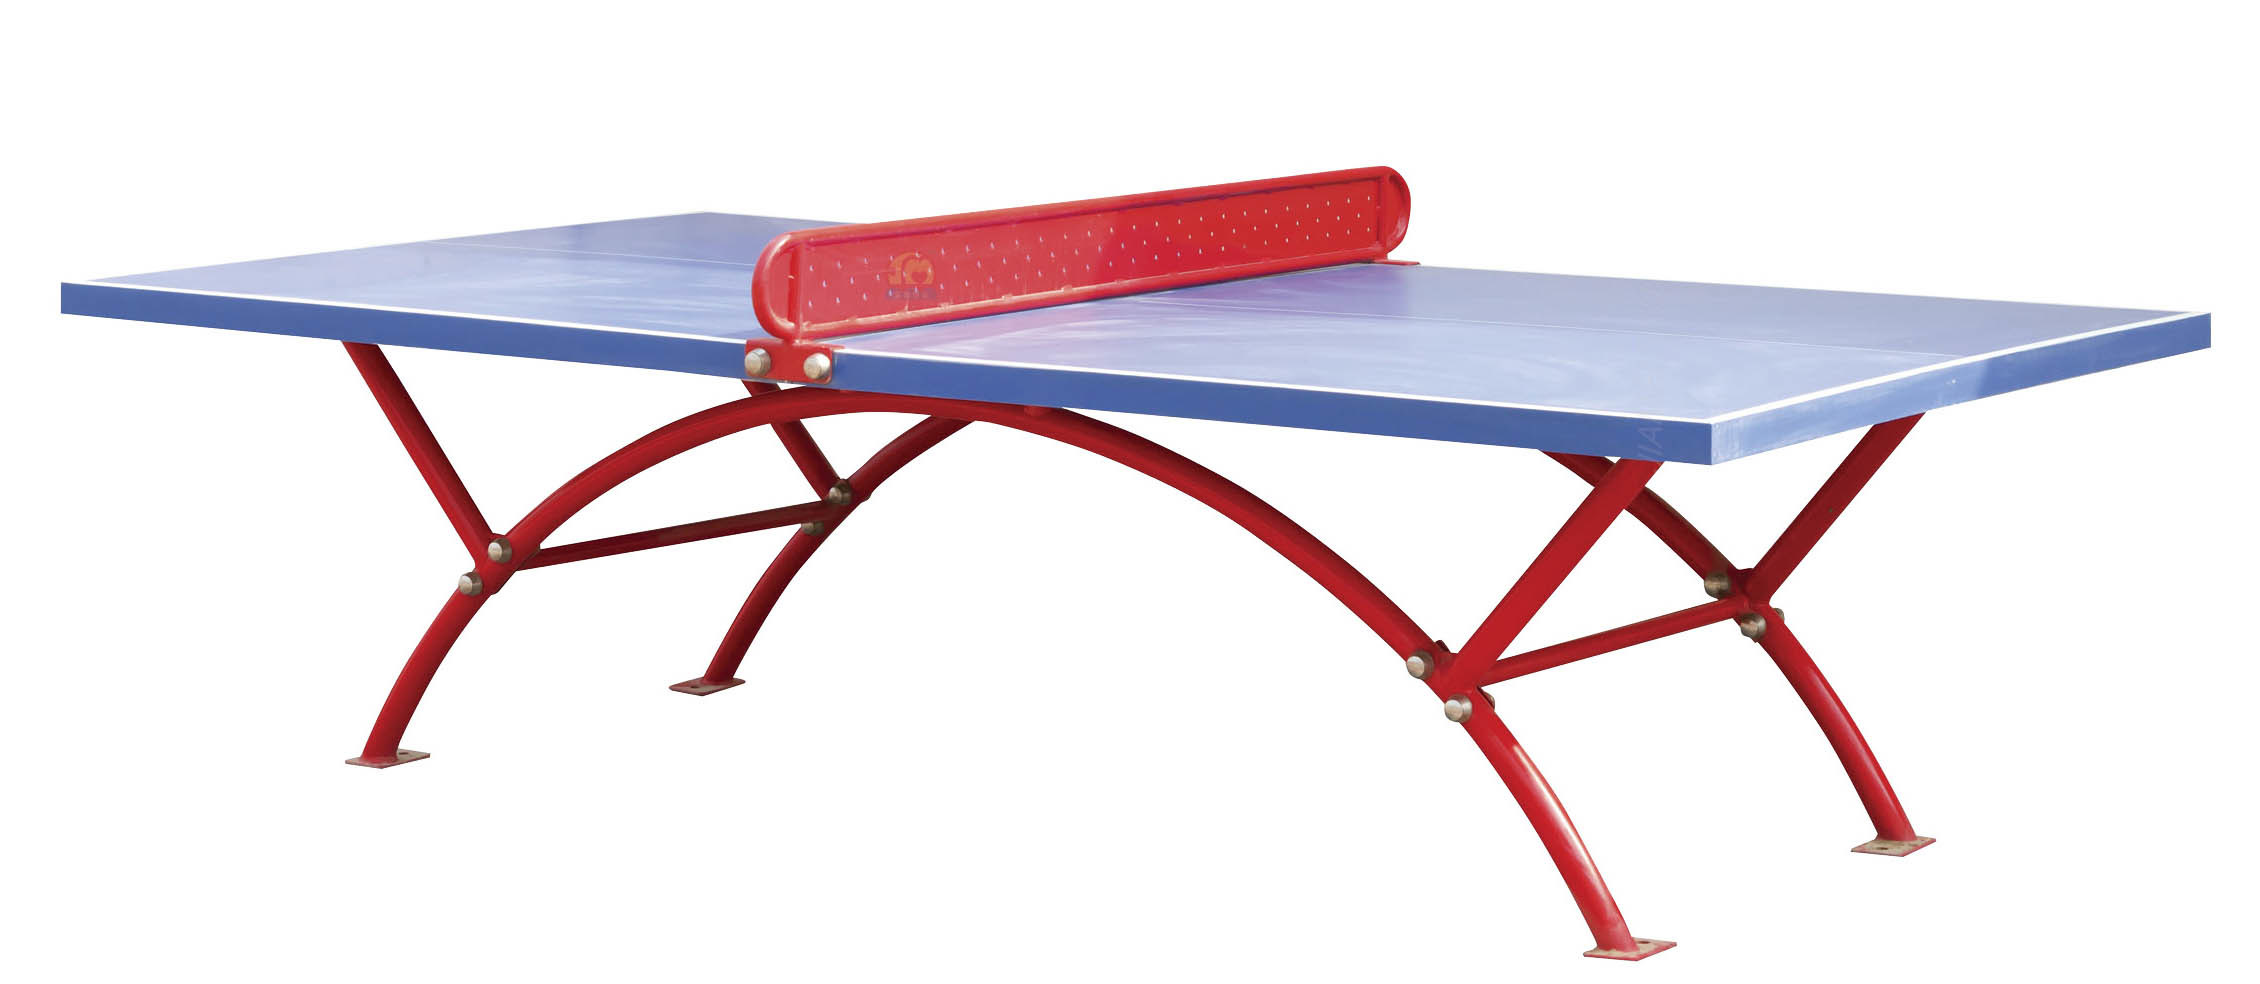 Sporting Goods -Outdoor Table Tennis Table-06-313xo